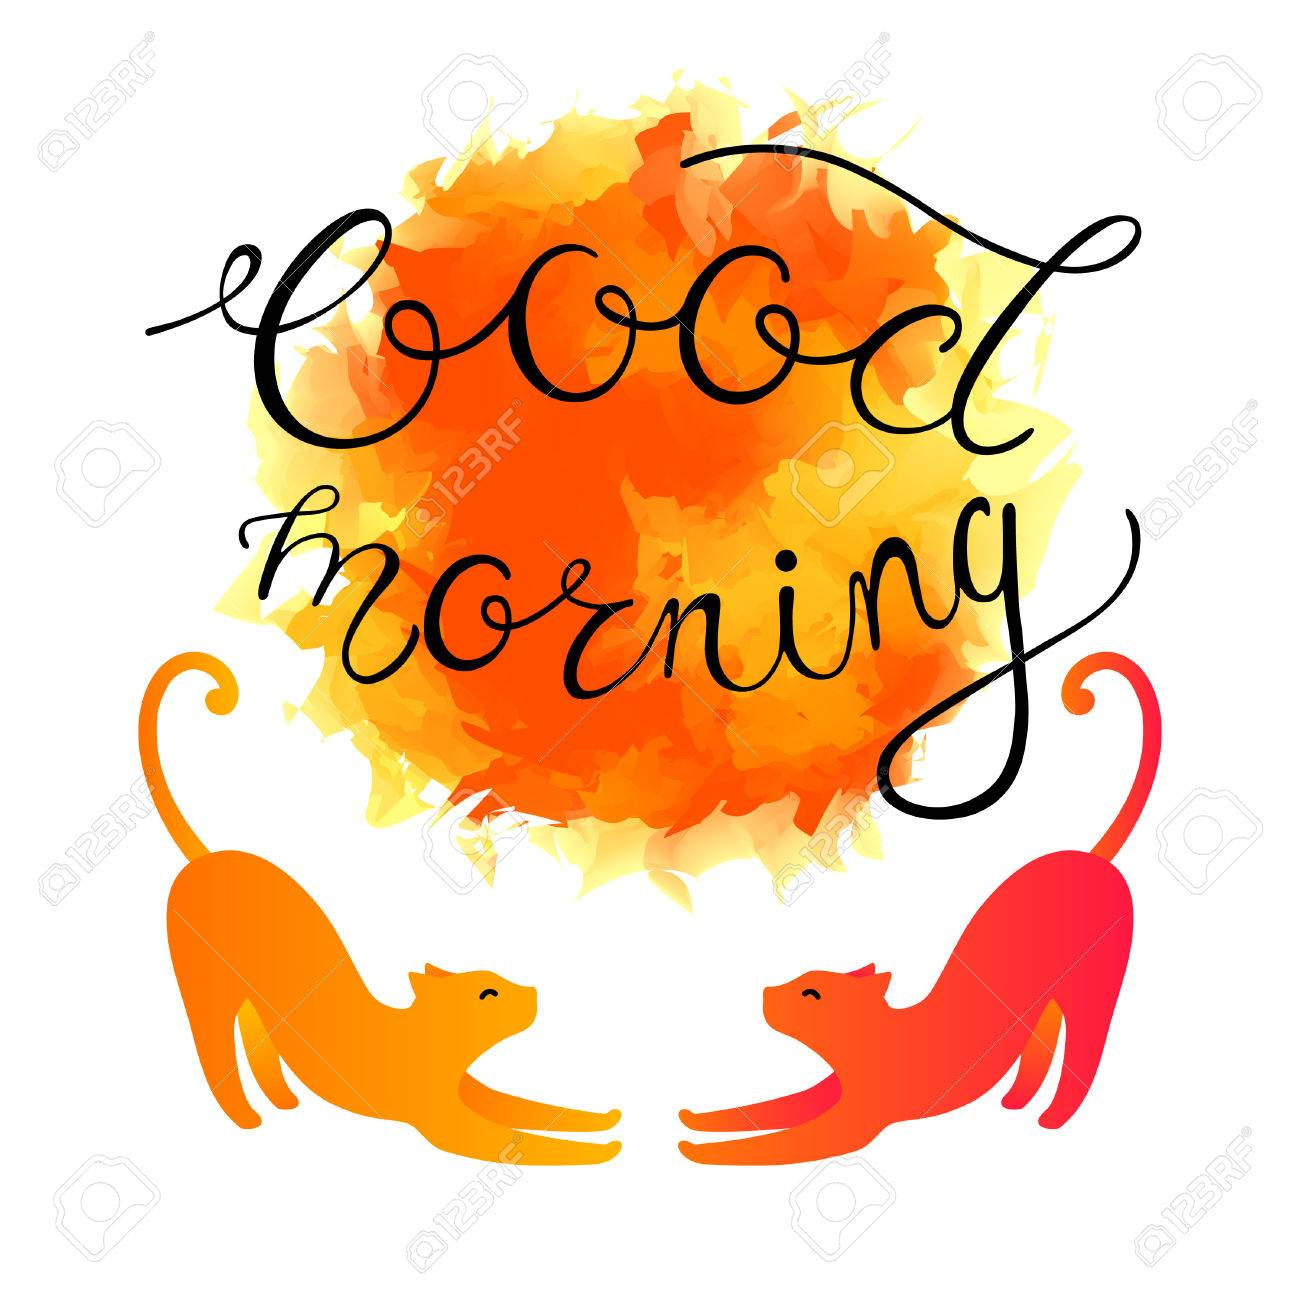 Good Sunny Morning Greeting Card Vector Illustration With